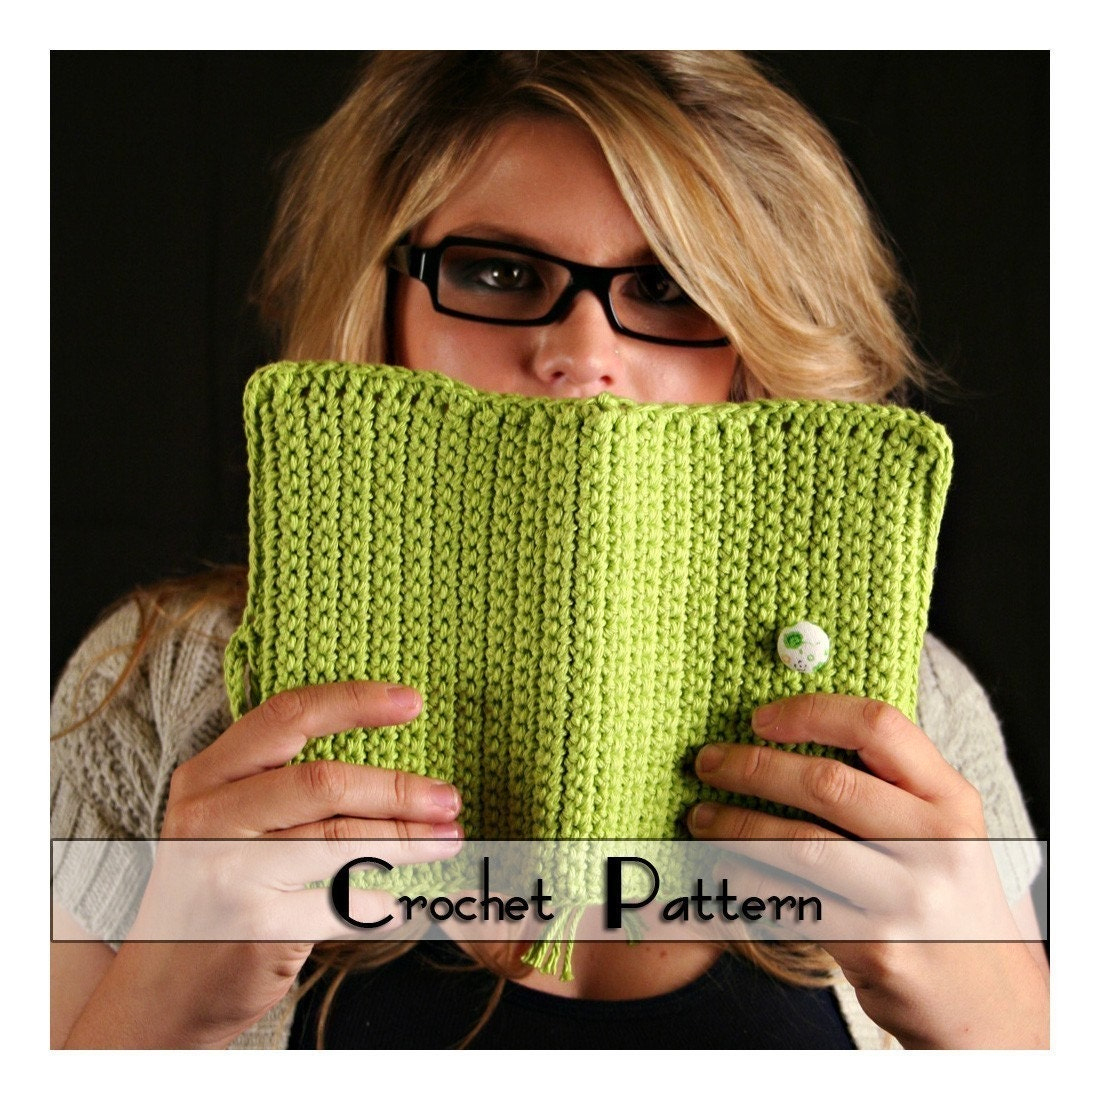 Crochet A Book Cover : Crochet pattern for book cover